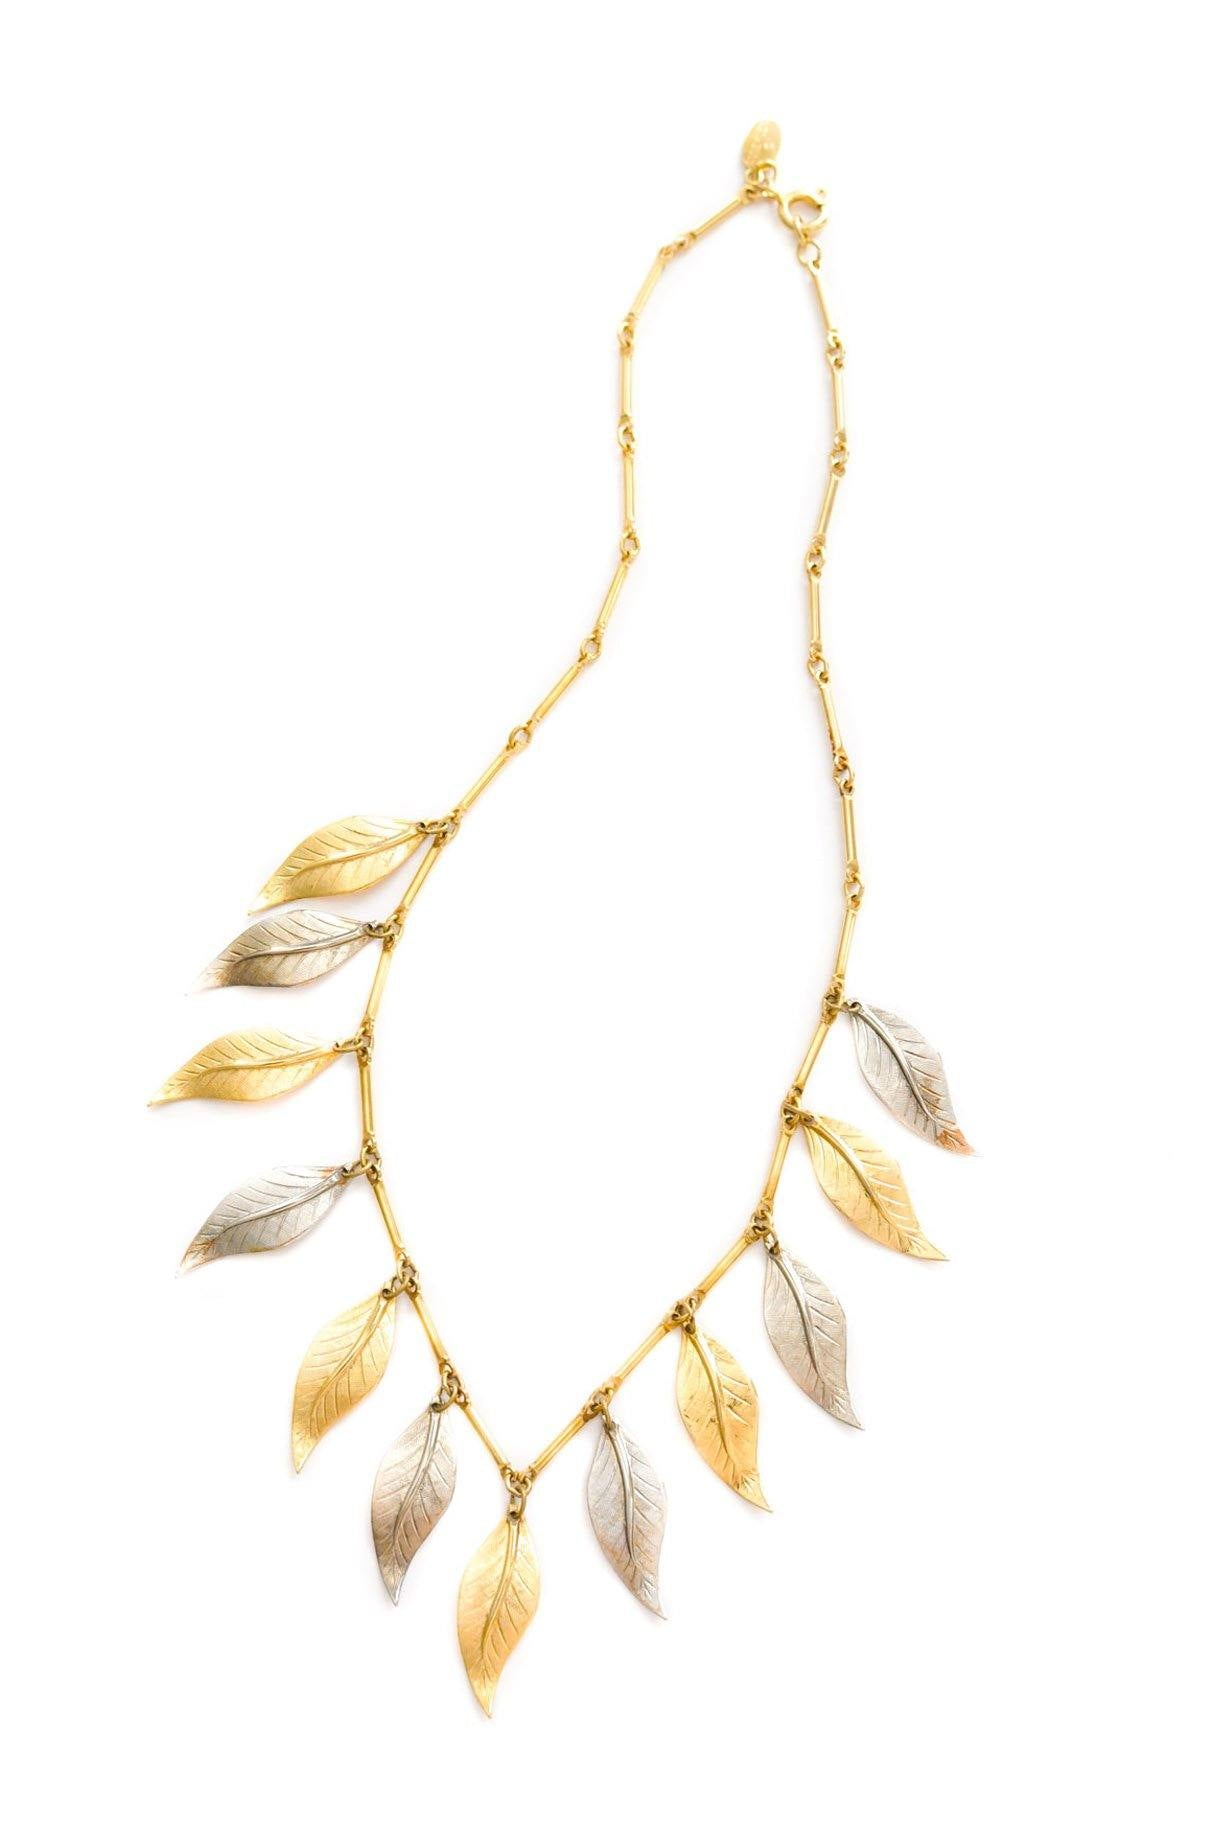 Vintage Anne Klein Leaf Necklace from Sweet & Spark.